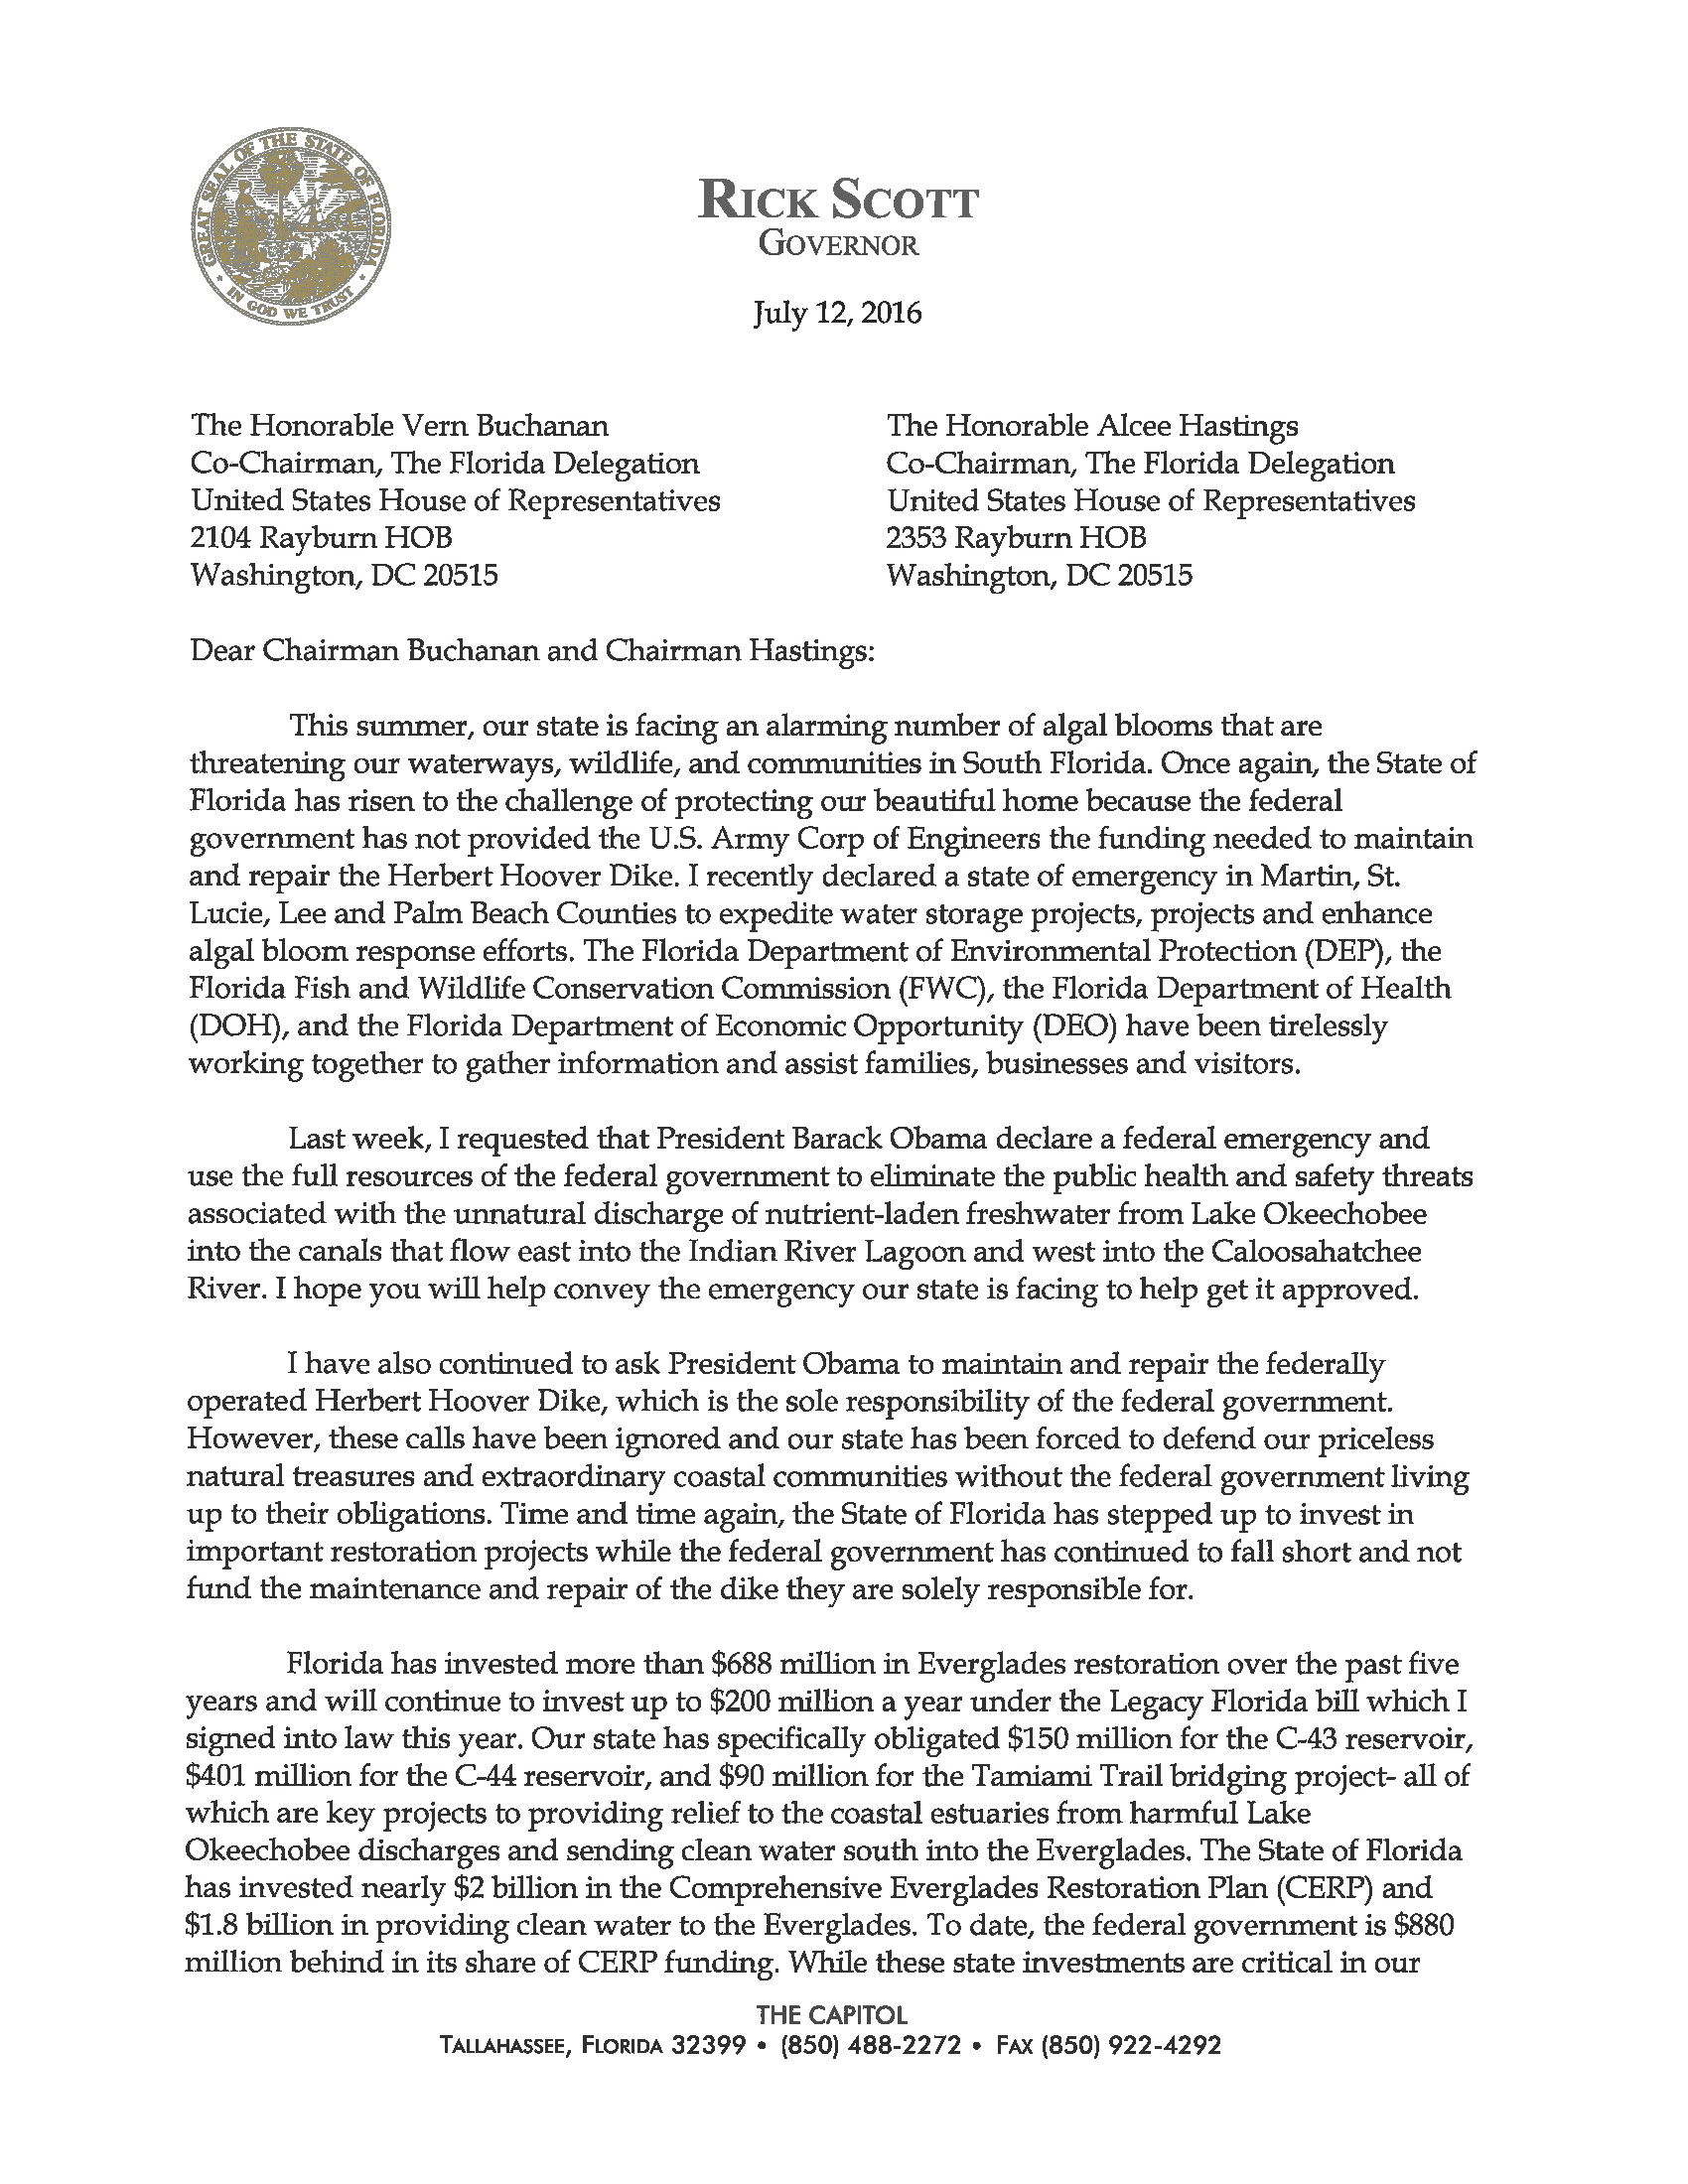 Gov. Scott Letter to Congressional Delegation_Page_1